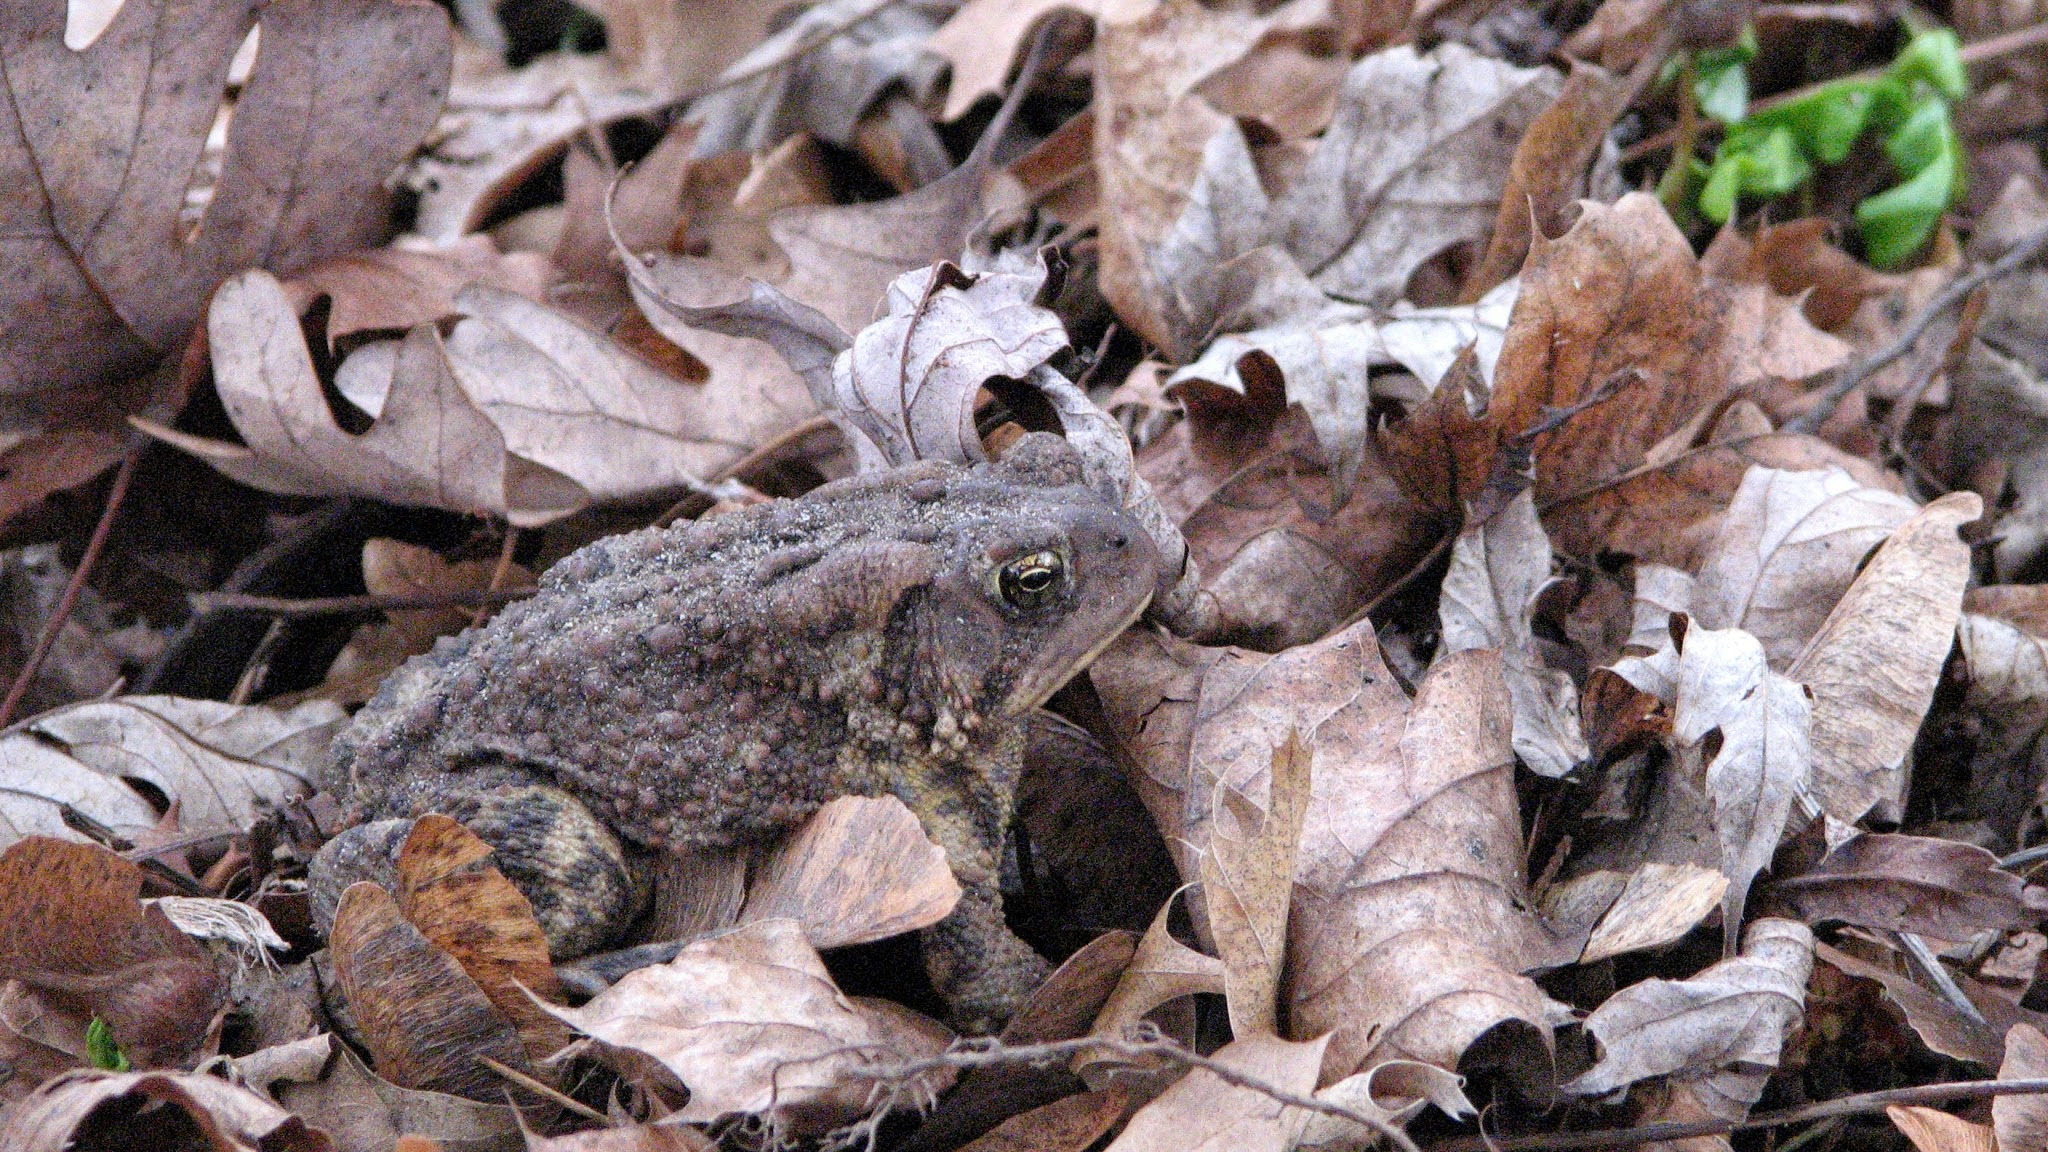 Photo: Great Camouflage, Mr Toad!